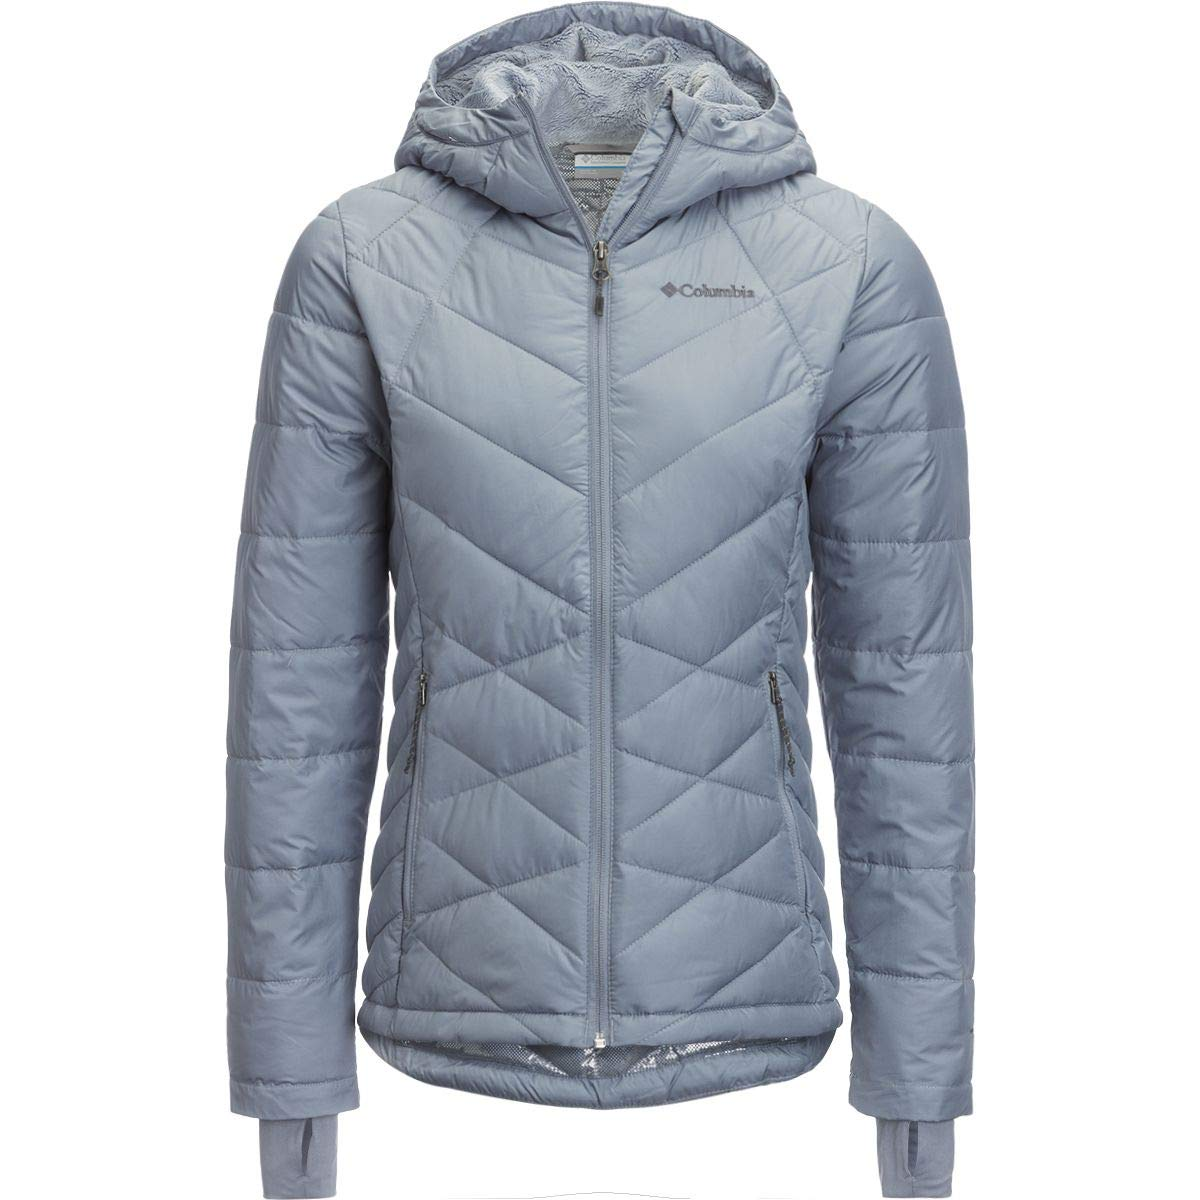 Columbia Women's Plus Size Heavenly HDD Jacket, Tradewinds Grey, 3X by Columbia